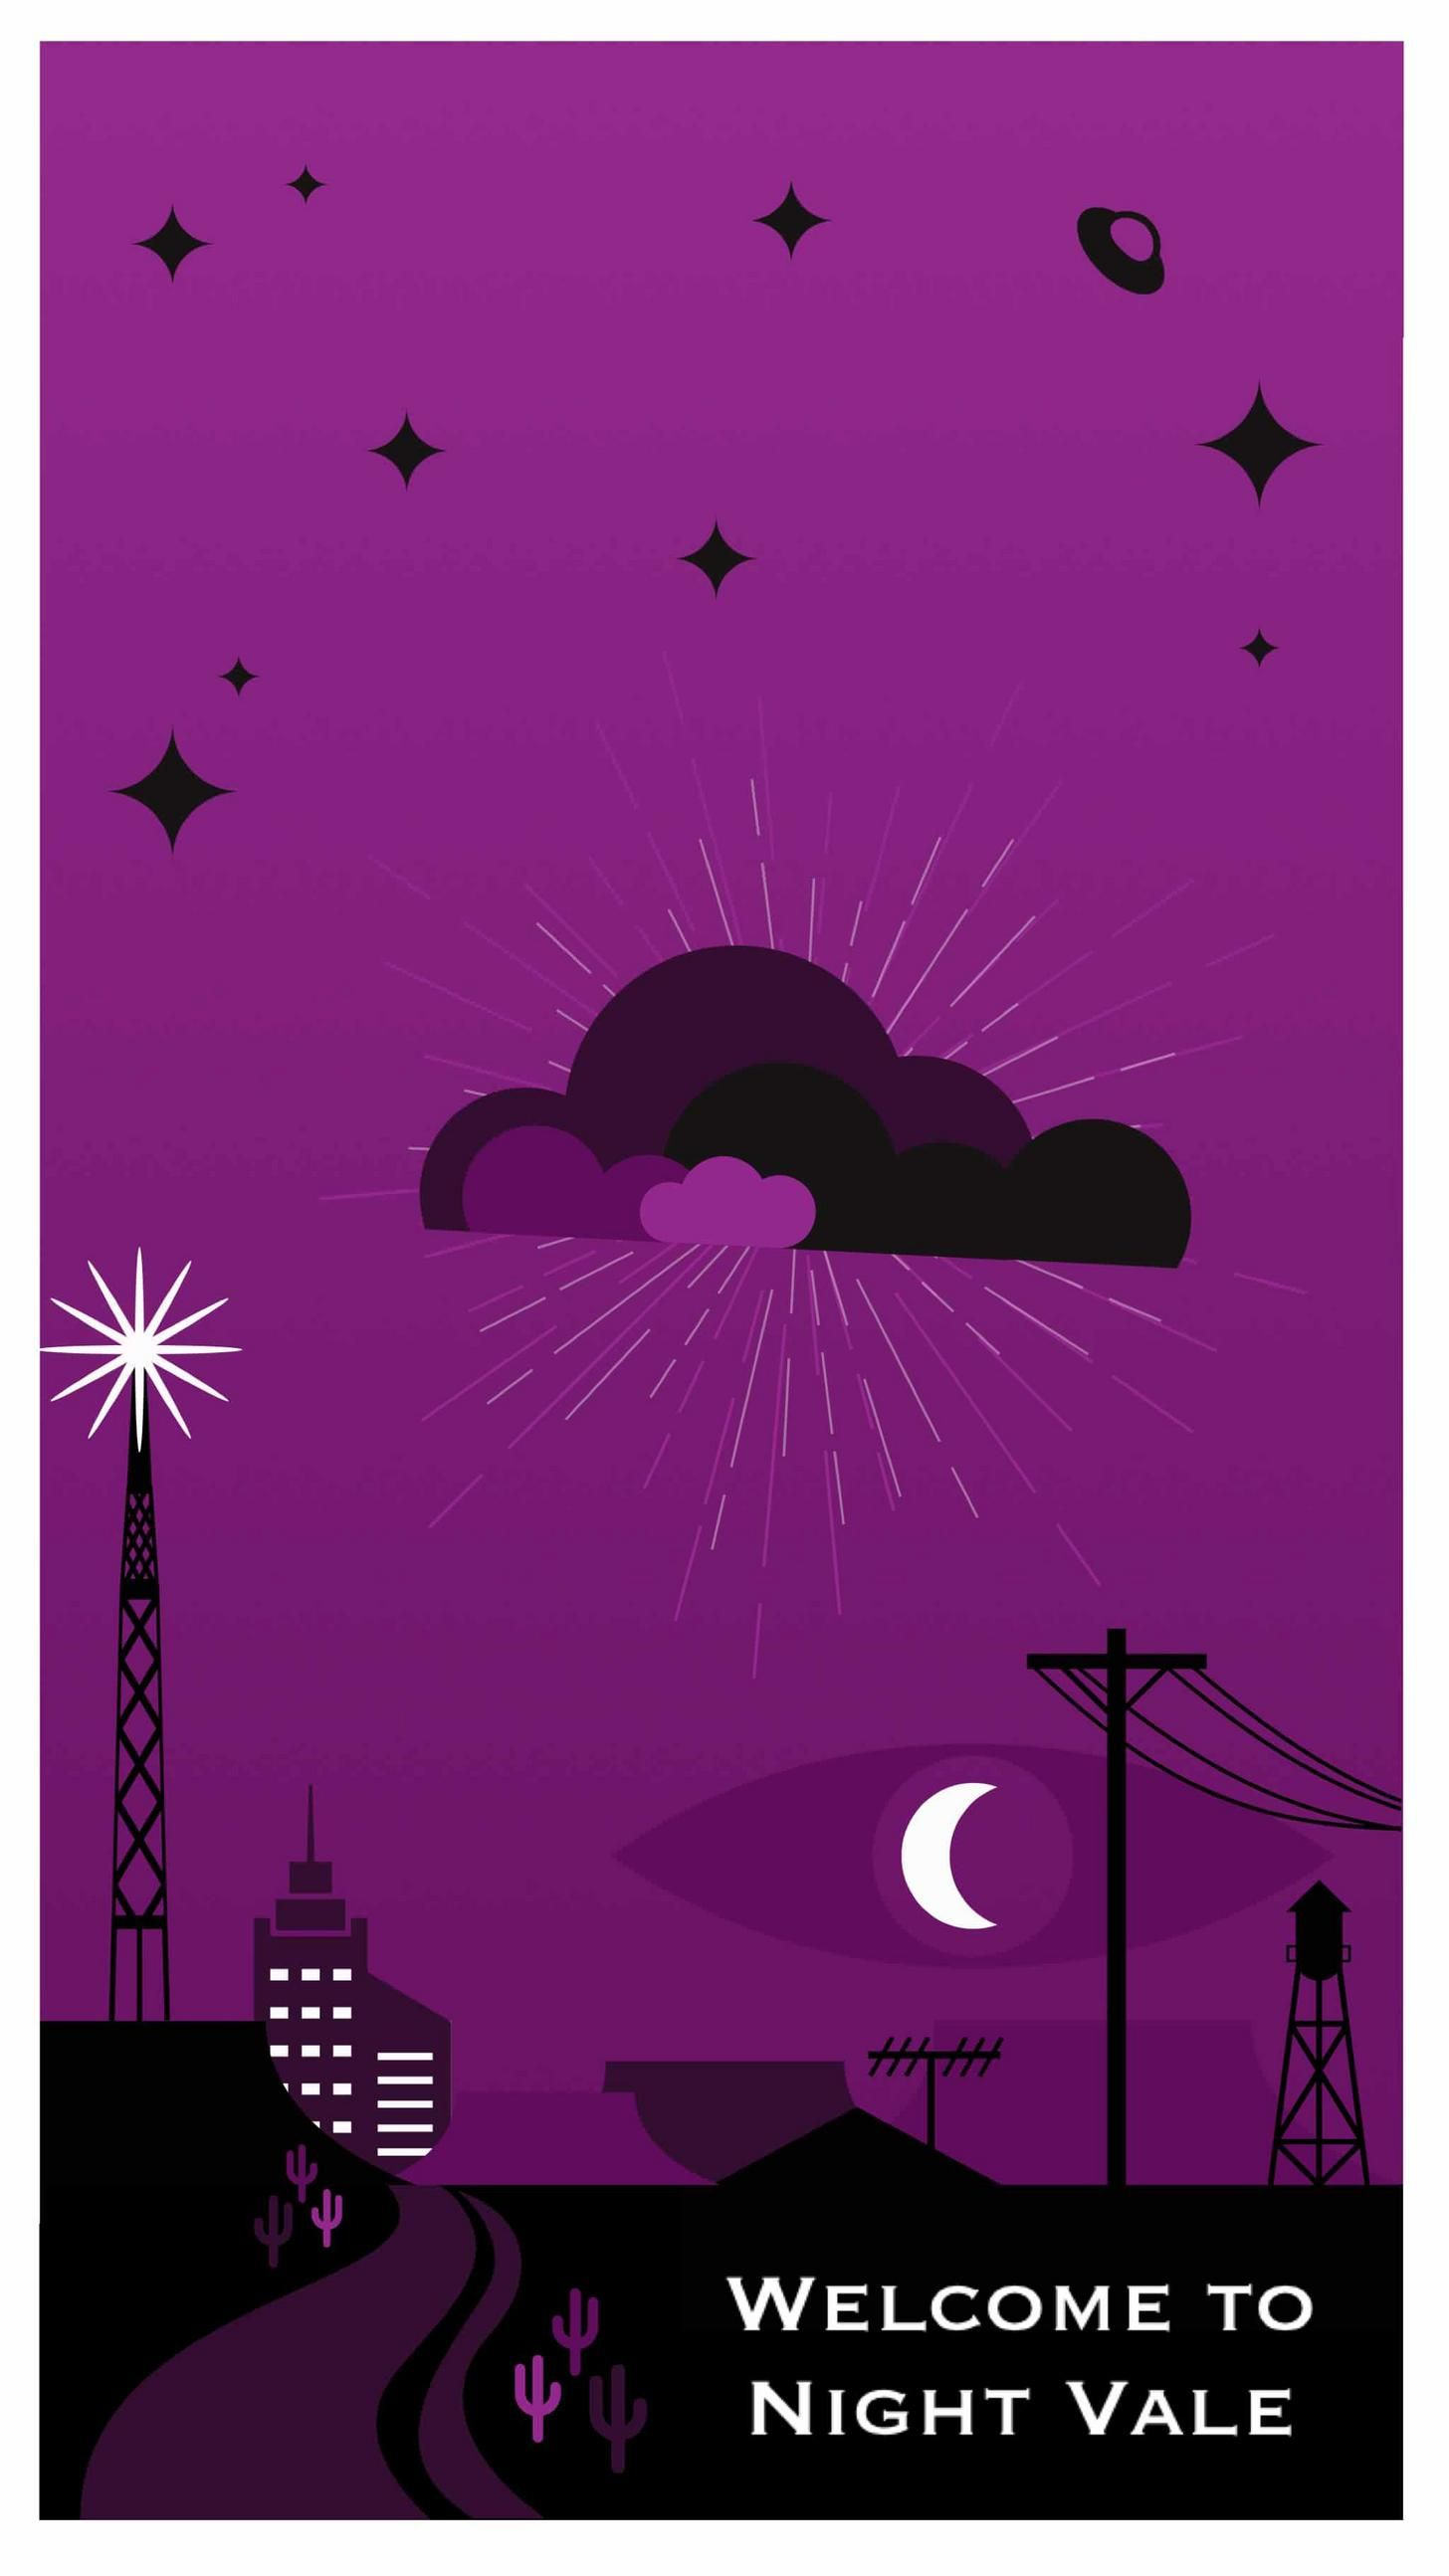 Night Vale Tourism Posters Night Vale Welcome To Night Vale Night Vale Presents